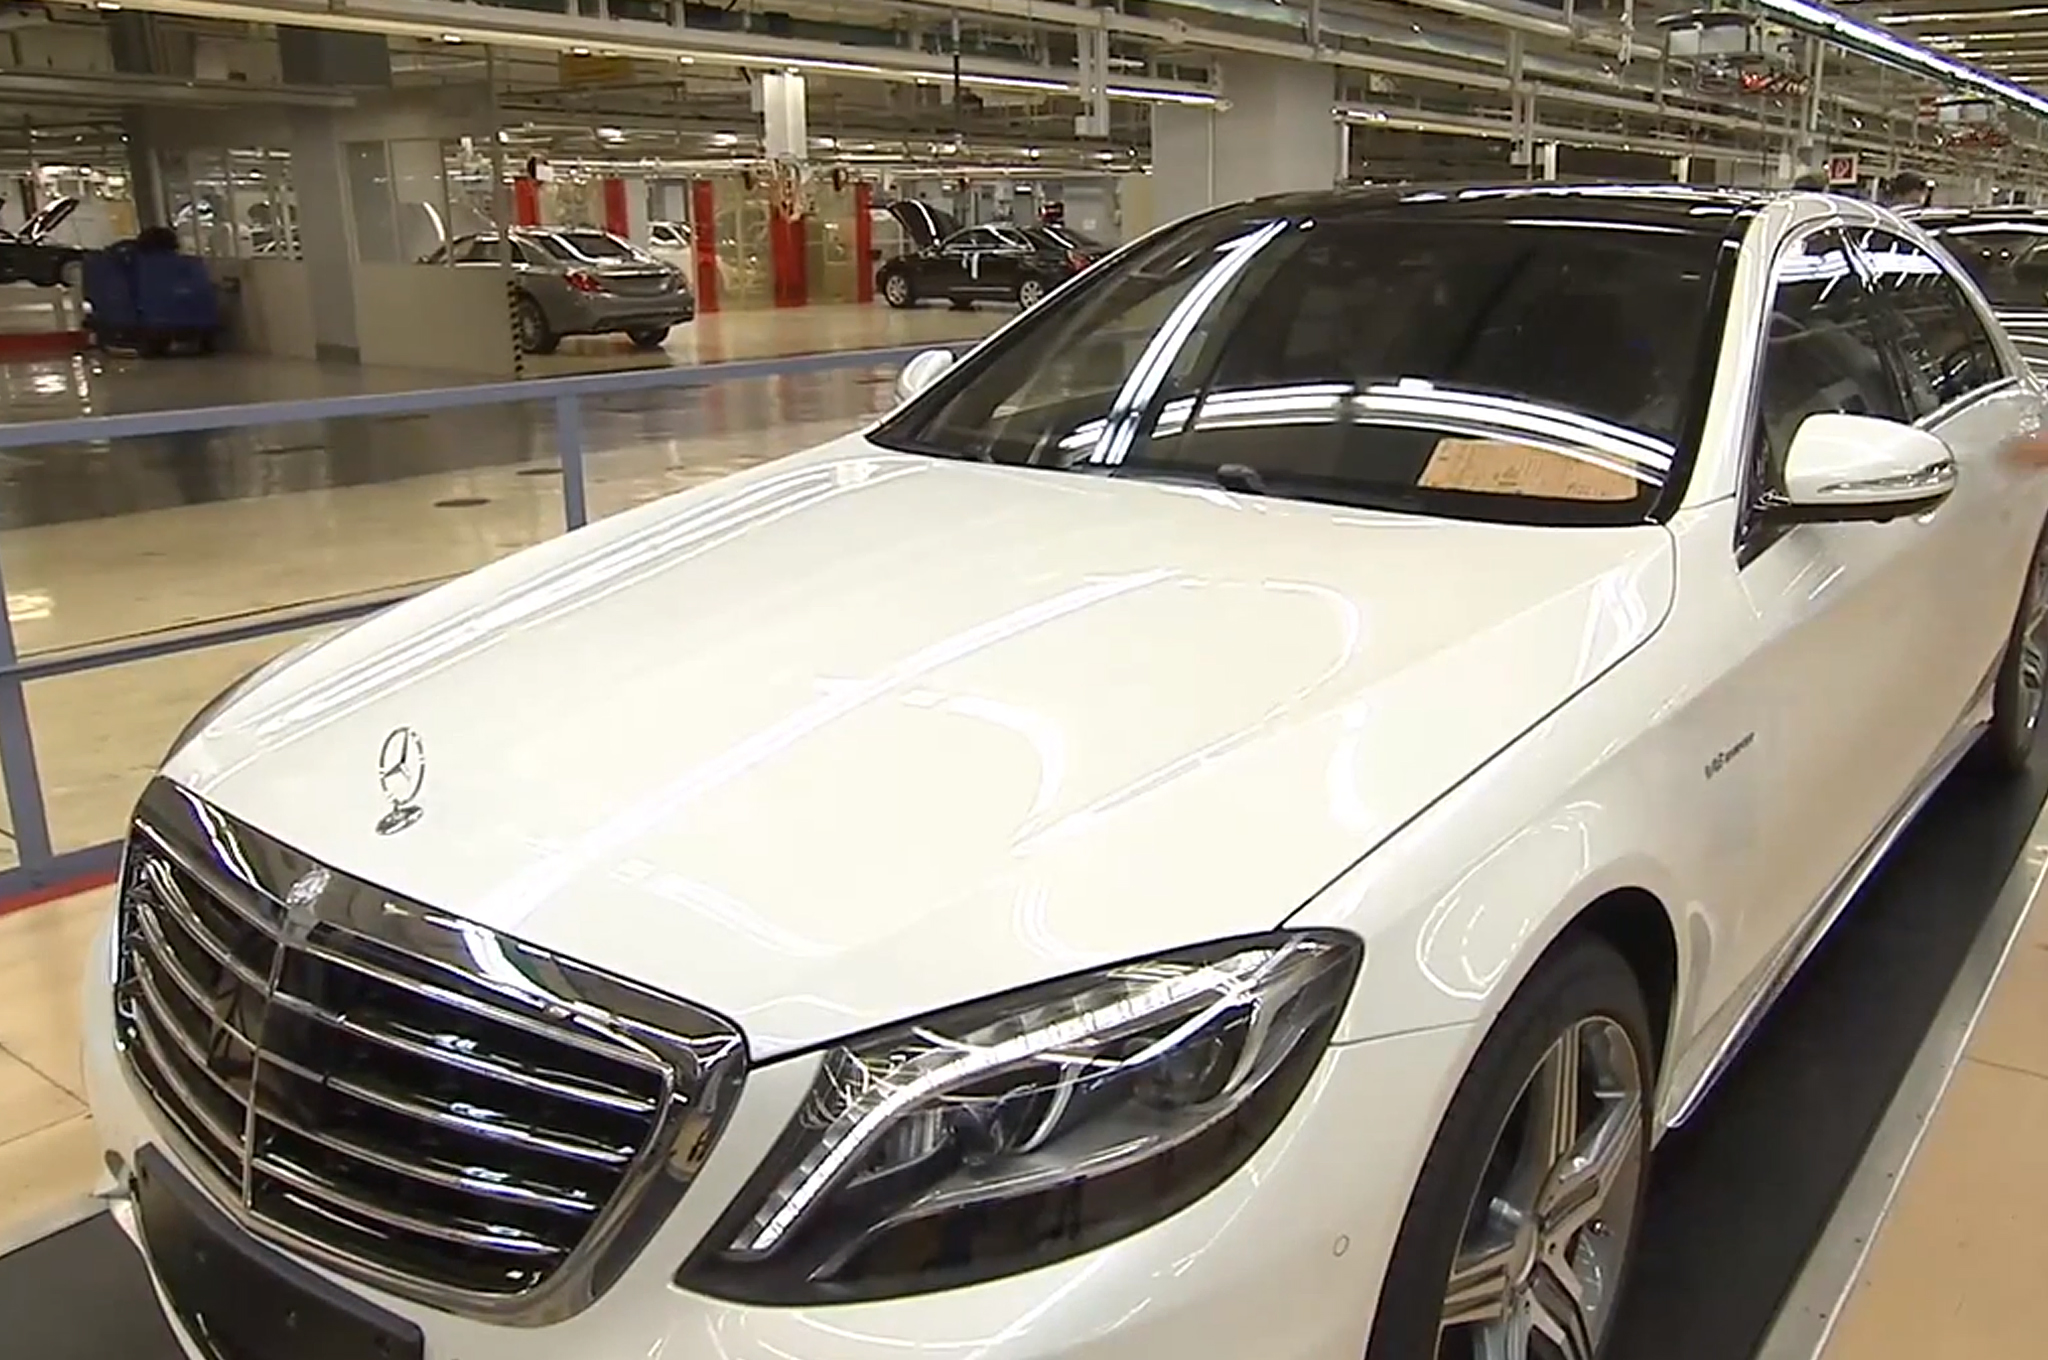 Is This The 2014 Mercedes Benz S63 AMG?